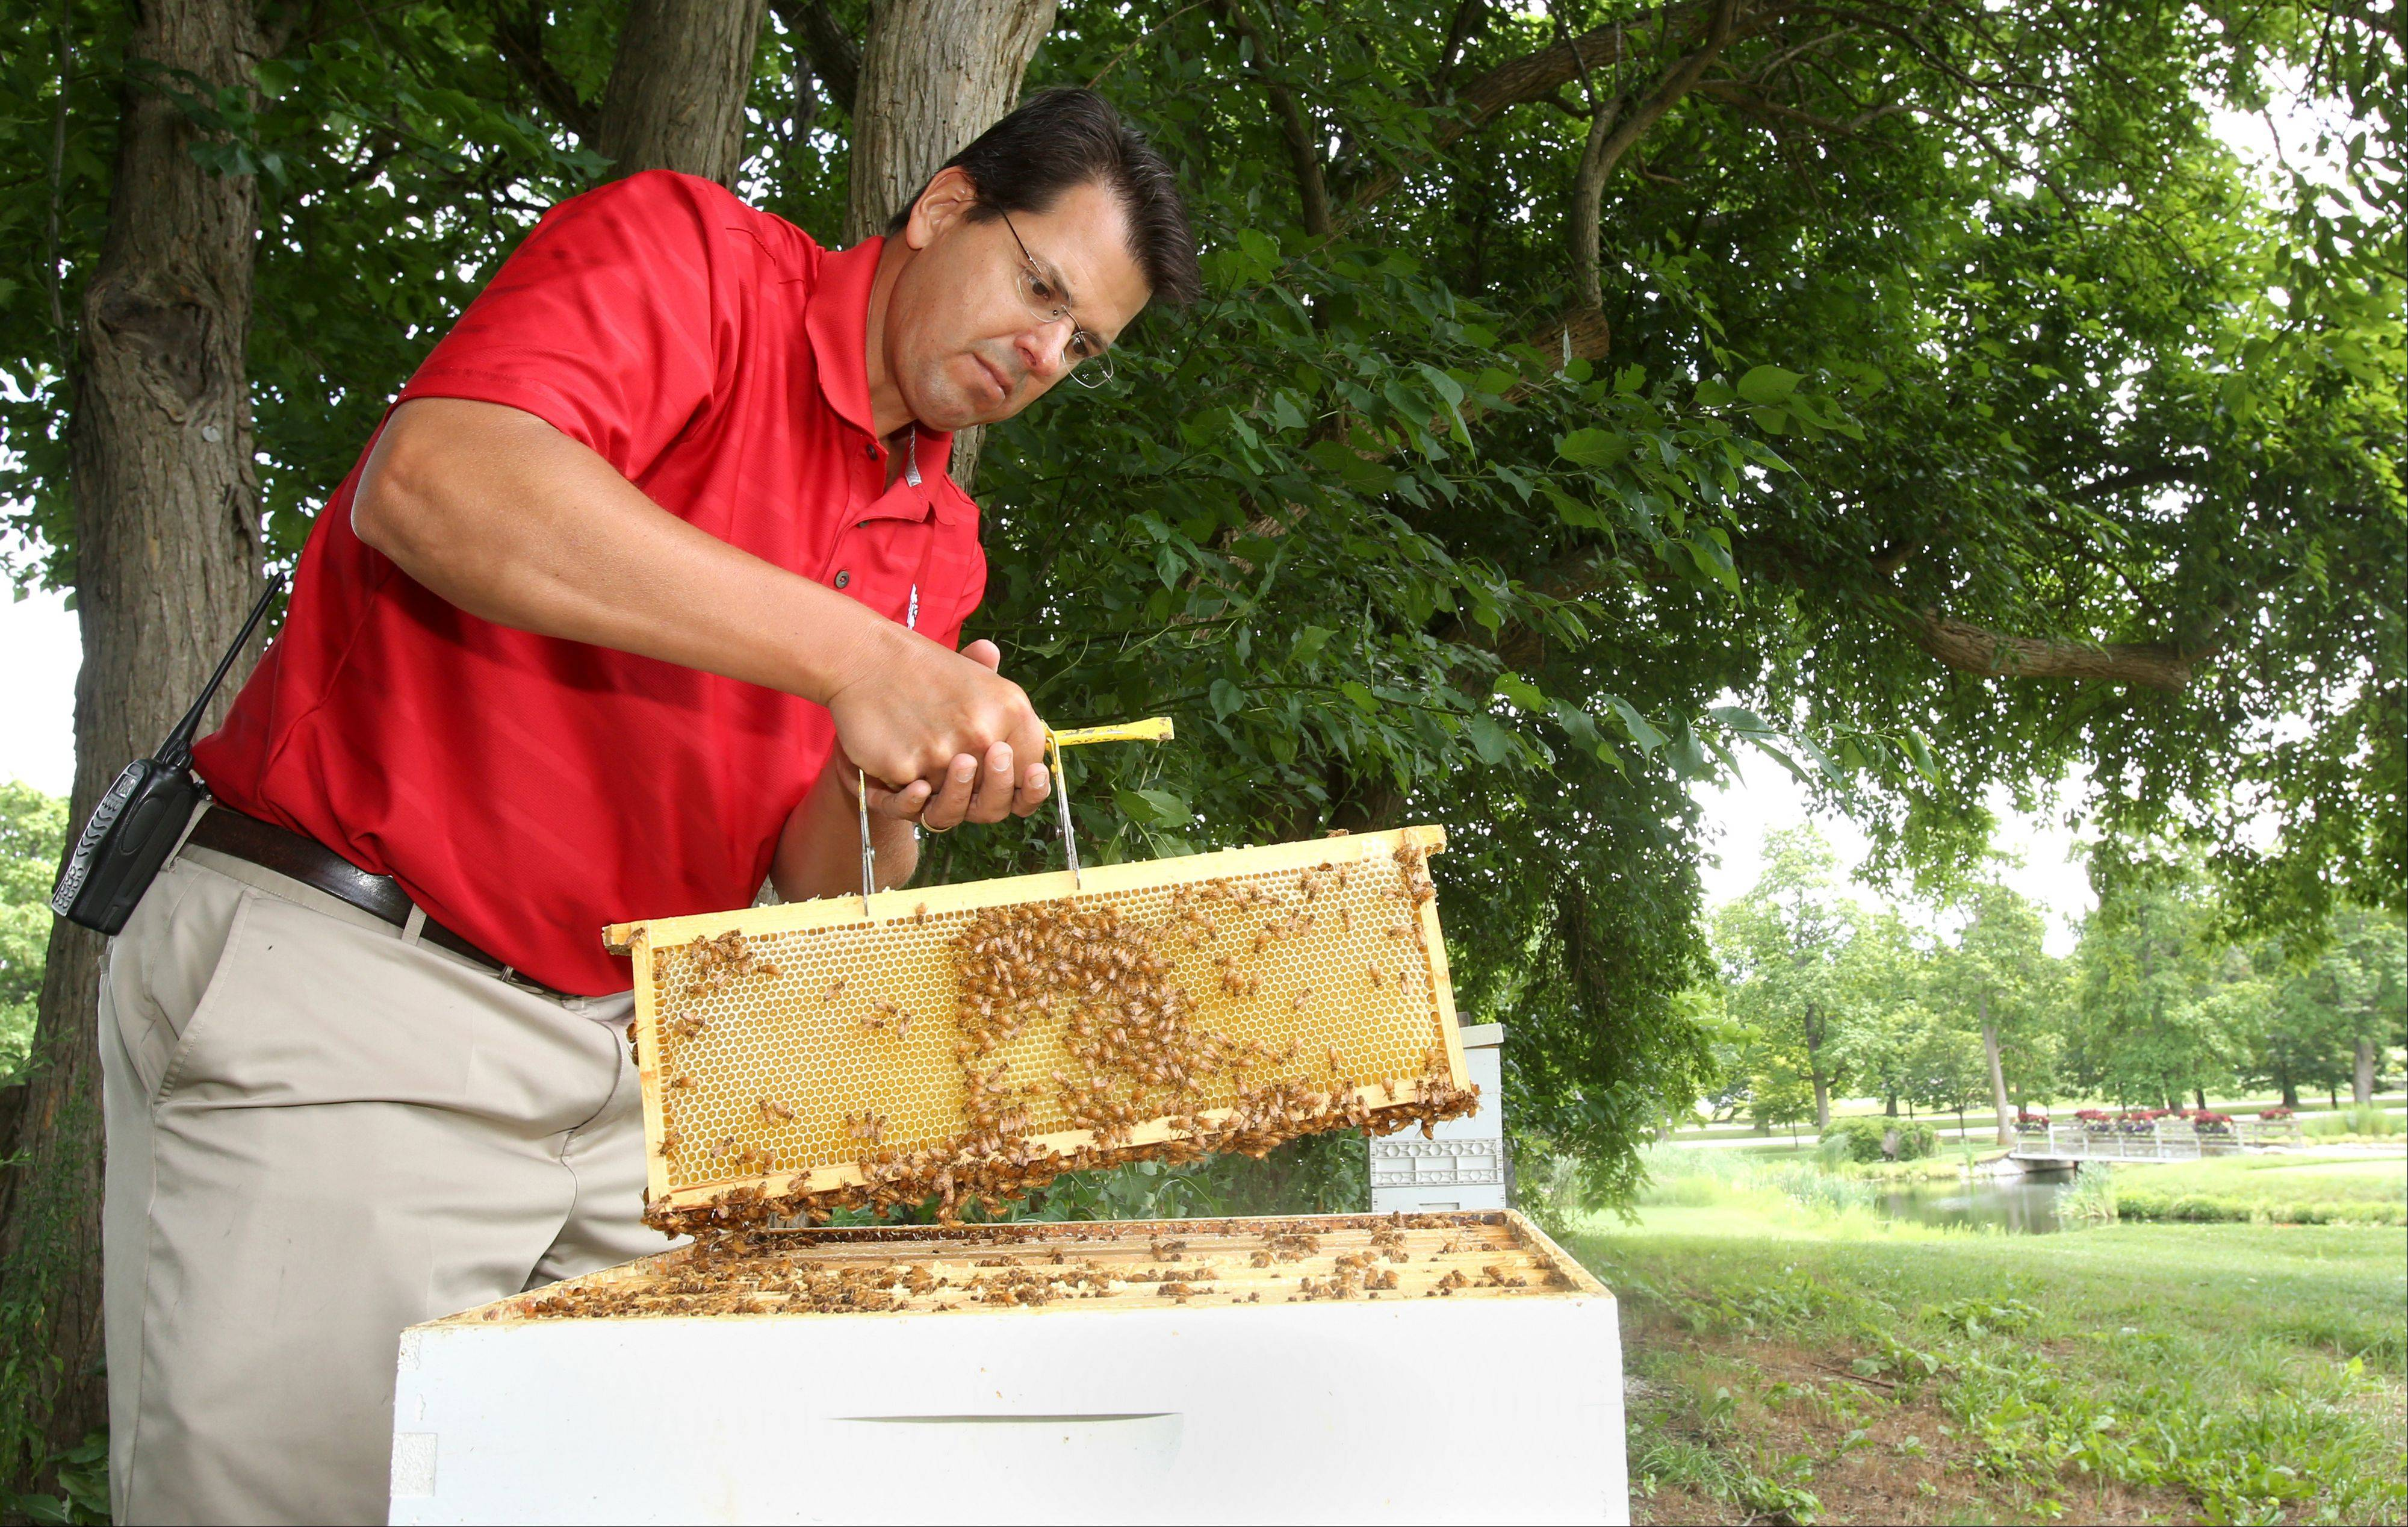 Scott Witte, superintendent of Cantigny Golf, makes weekly checks on the 10 beehives he keeps on the course. He also keeps a protective eye on three natural beehives in the hollows of trees.